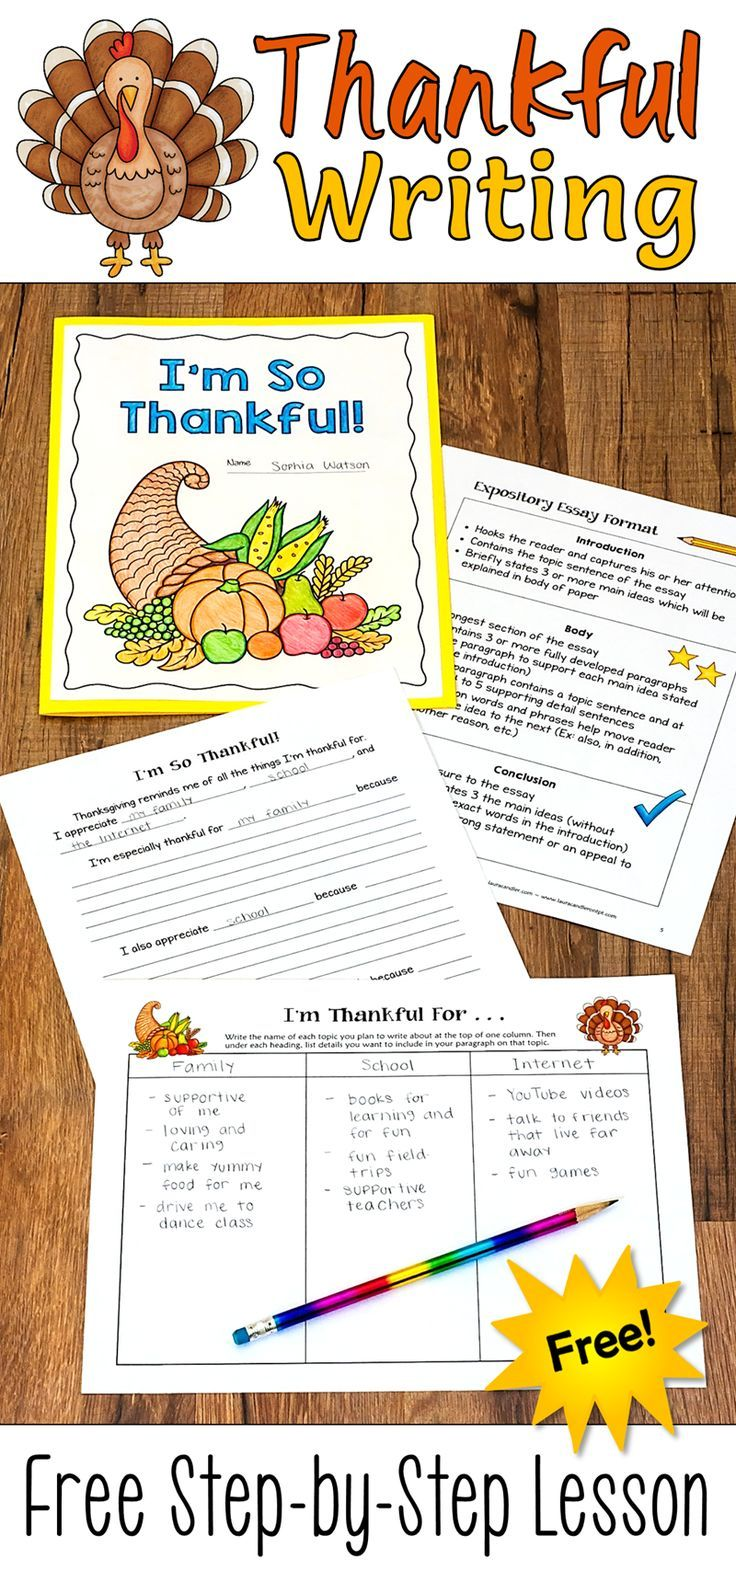 Free Thanksgiving Writing Activity From Laura Candler This Step By Step Lesson Includes Gr Thanksgiving Writing Thanksgiving Writing Activity Thankful Writing [ 1571 x 736 Pixel ]